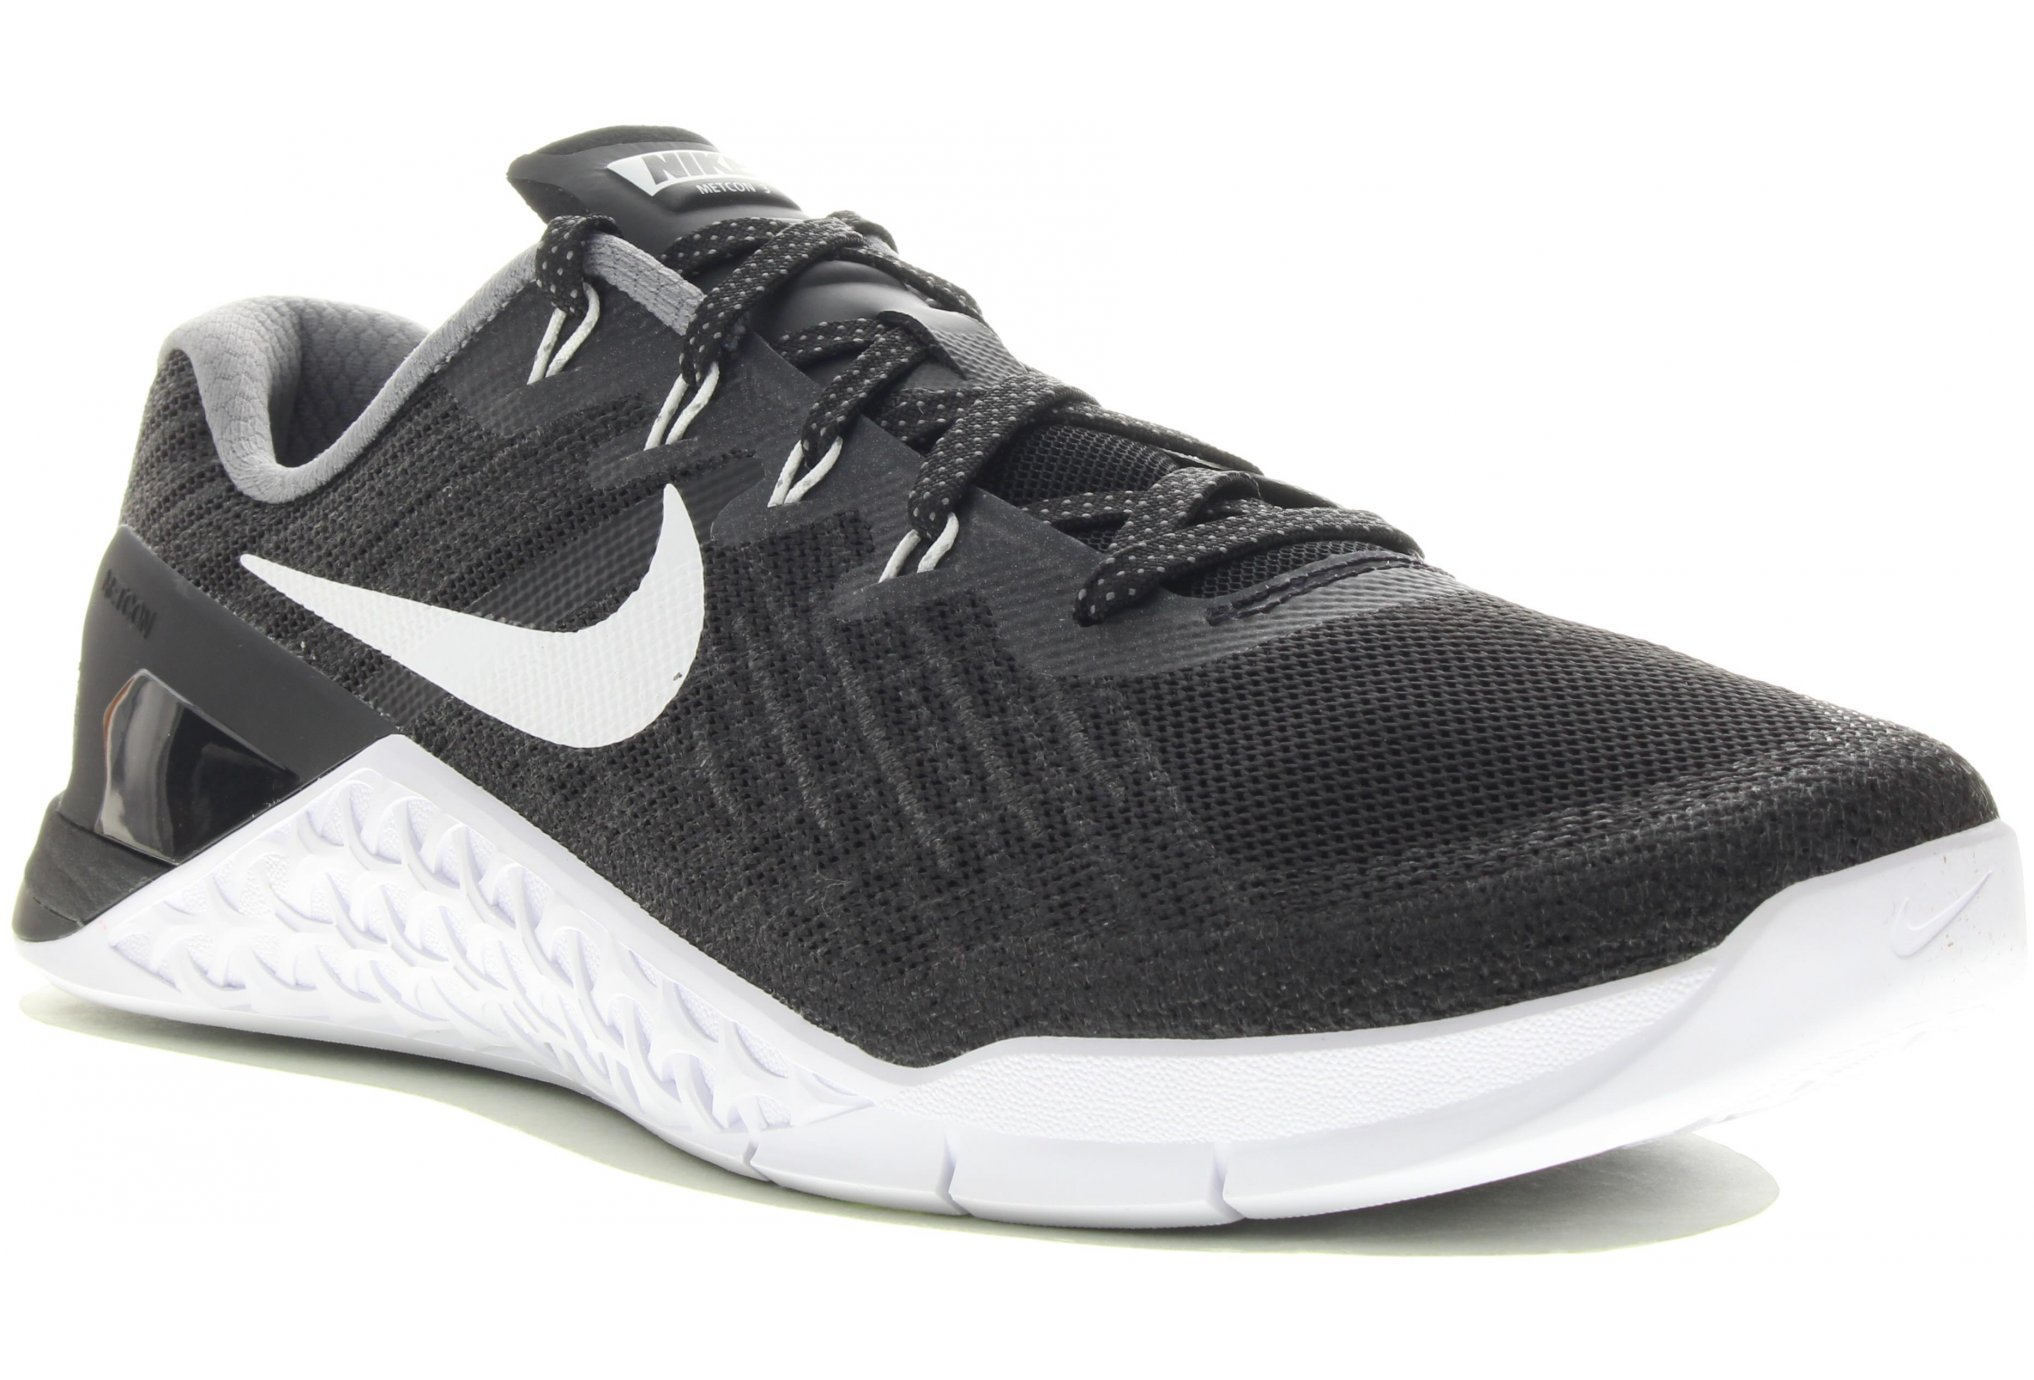 mont 39 run nike metcon 3 w chaussures running femme. Black Bedroom Furniture Sets. Home Design Ideas